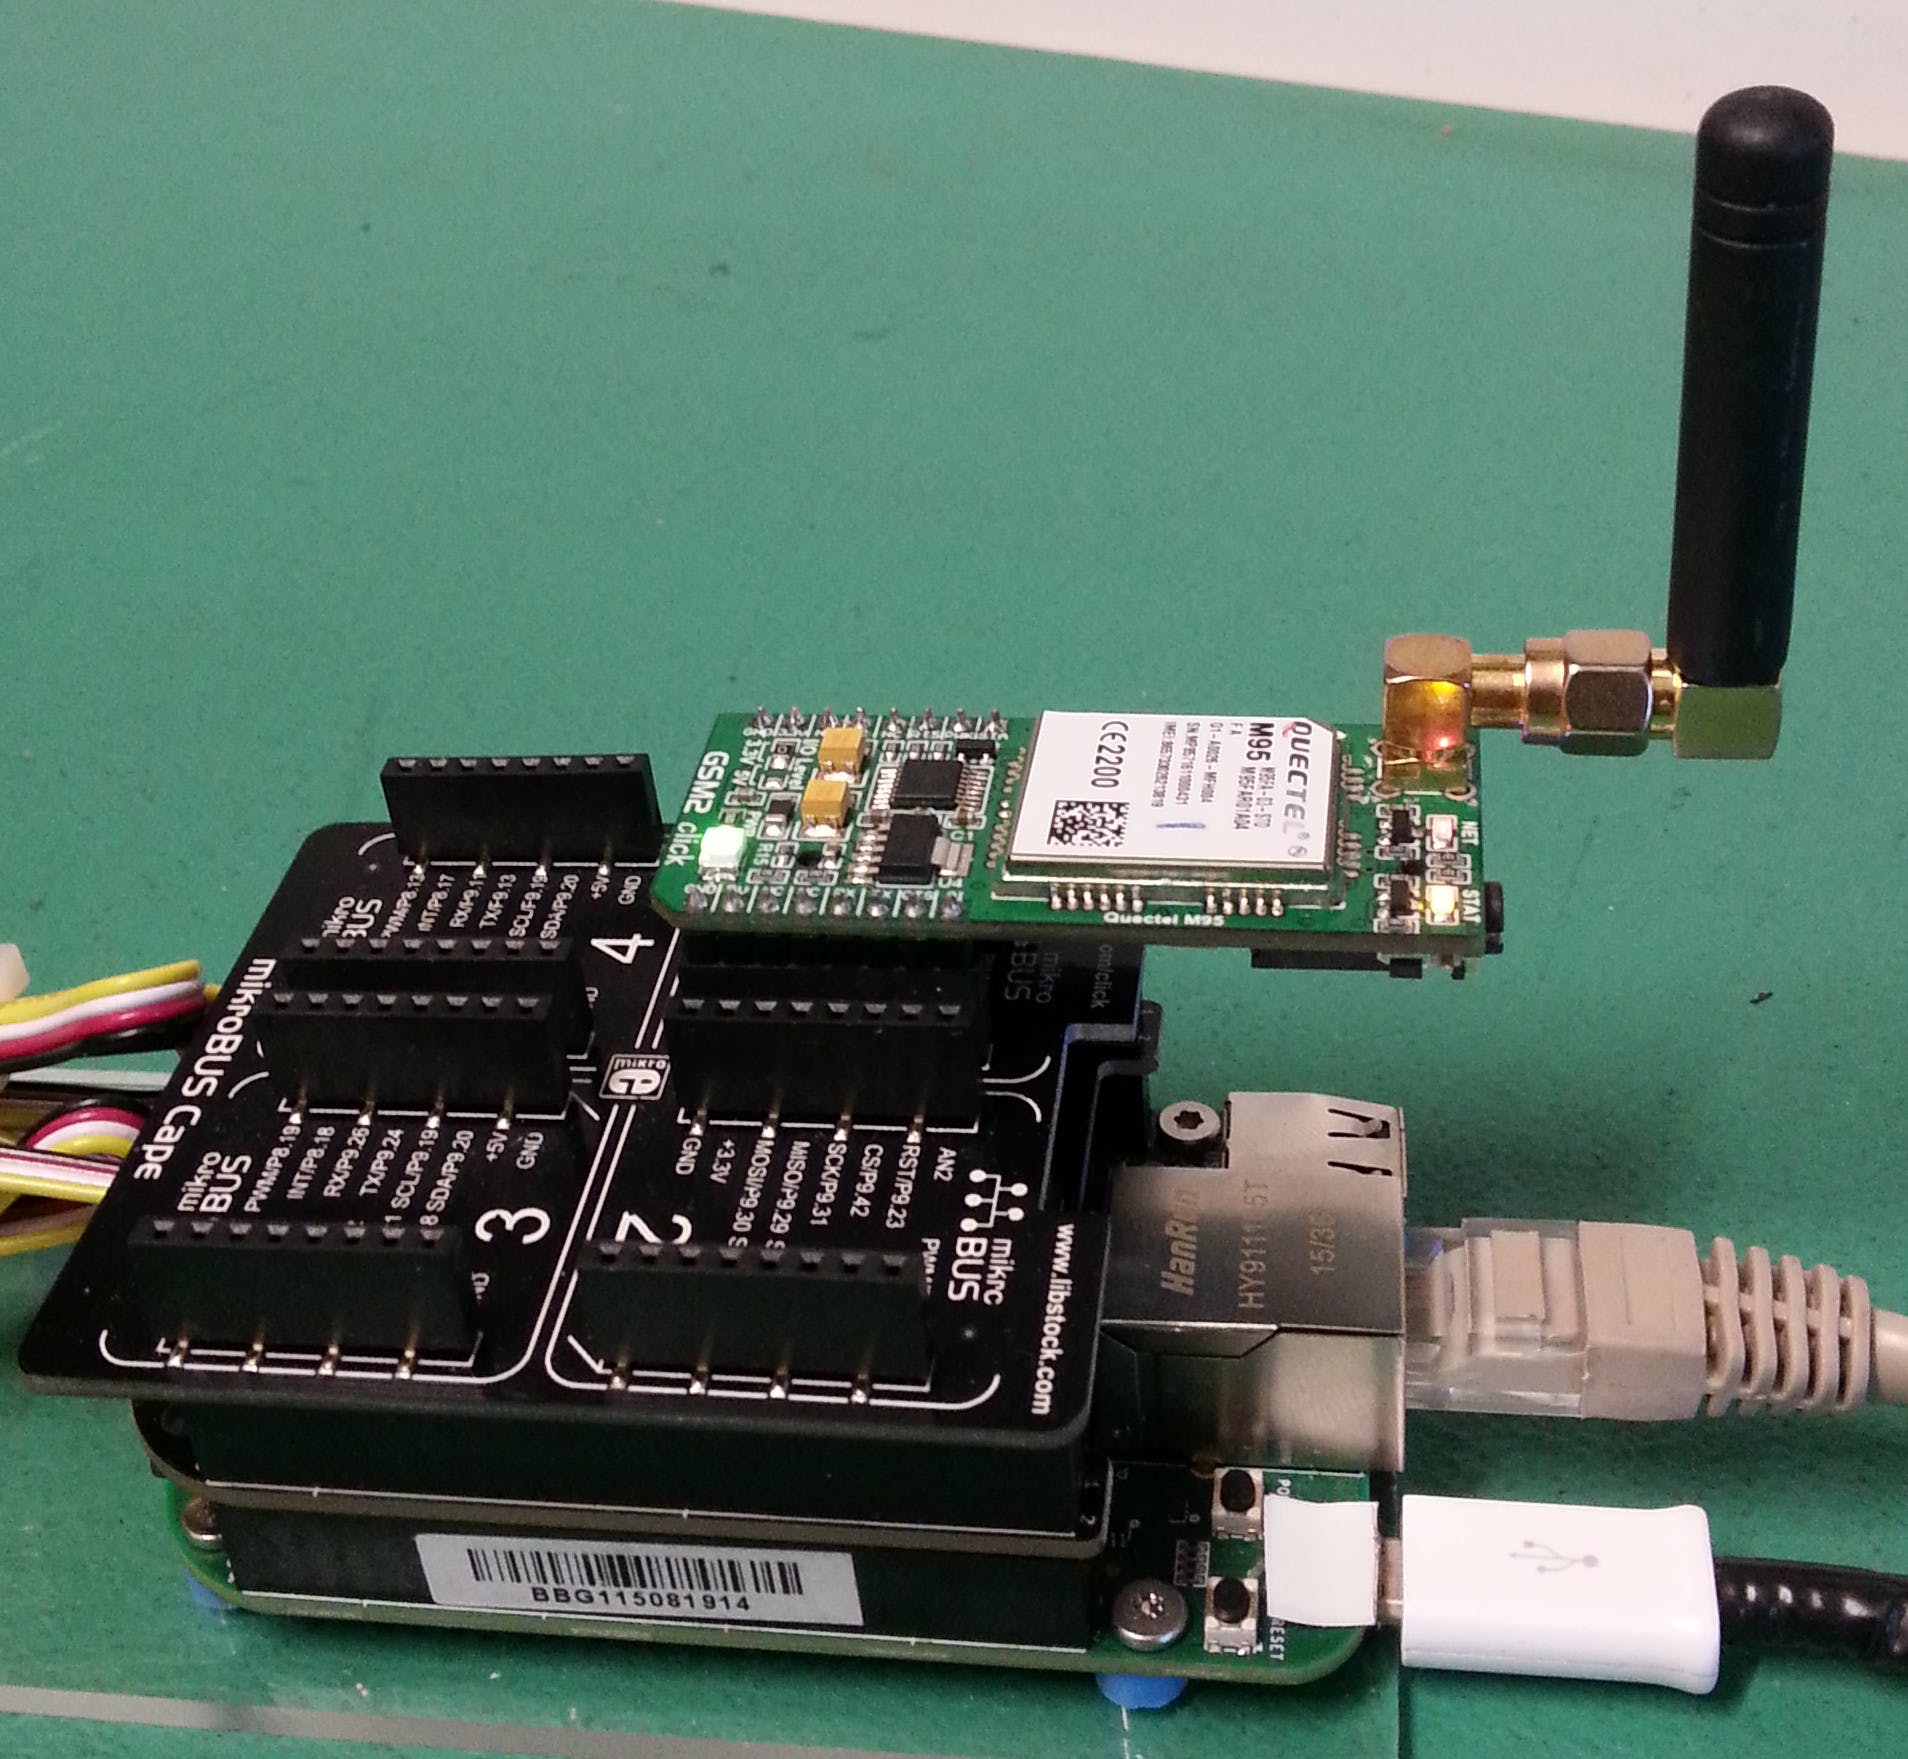 The GPRS Modem, GSM Antenna and MikroBus Cape connected